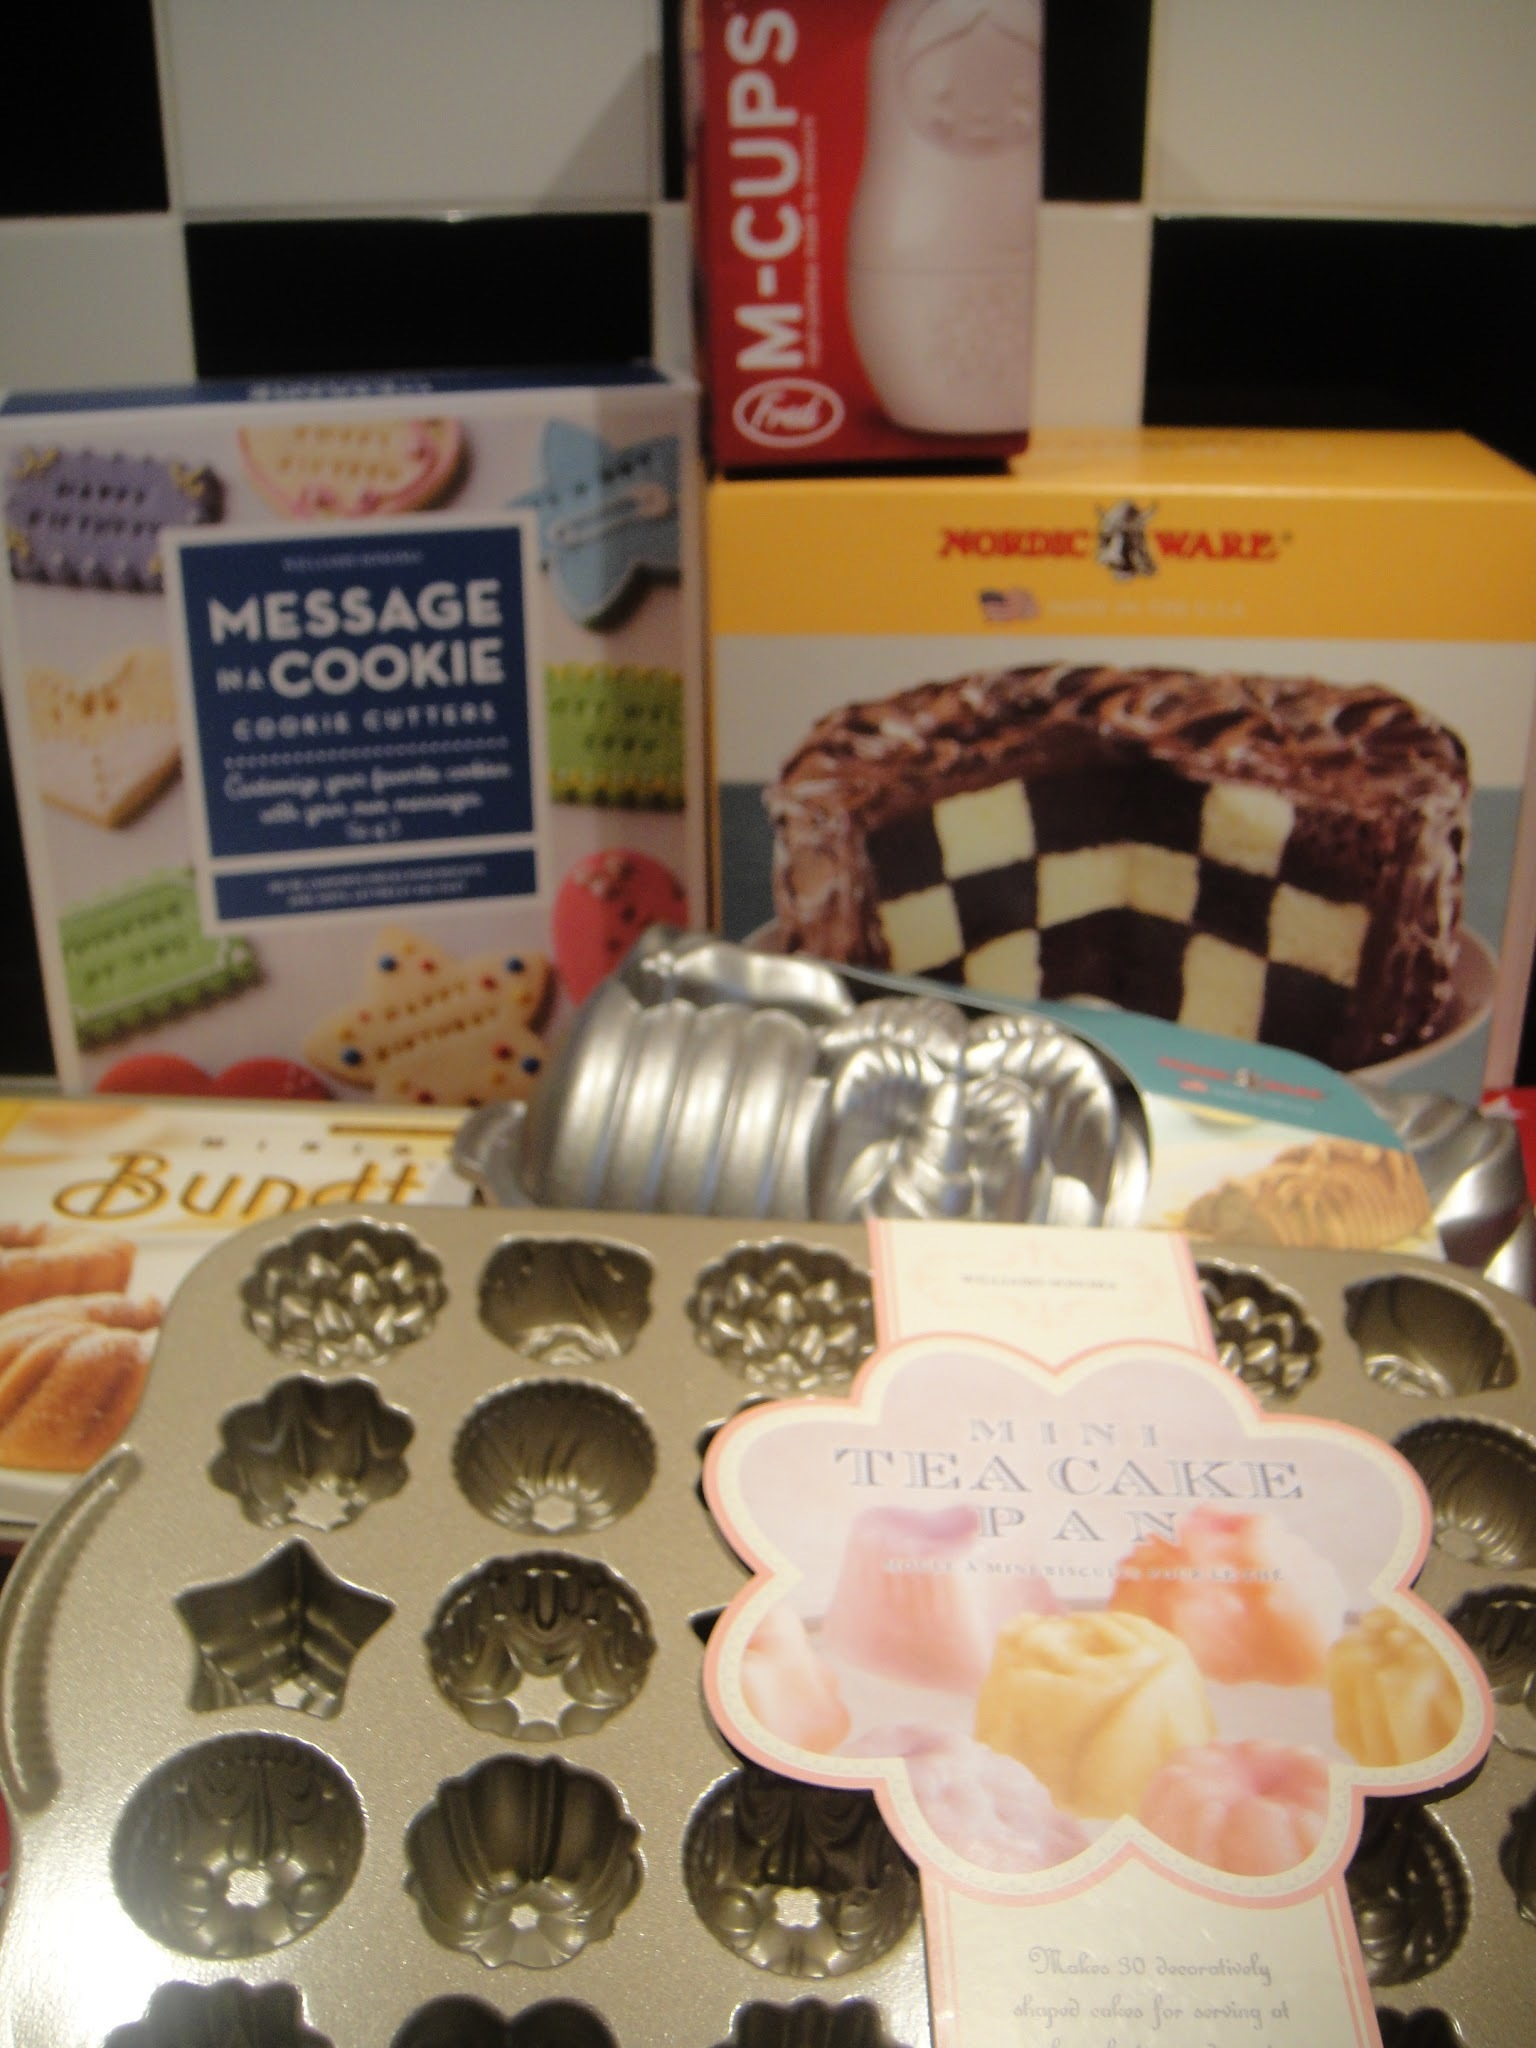 Baking goodies from America